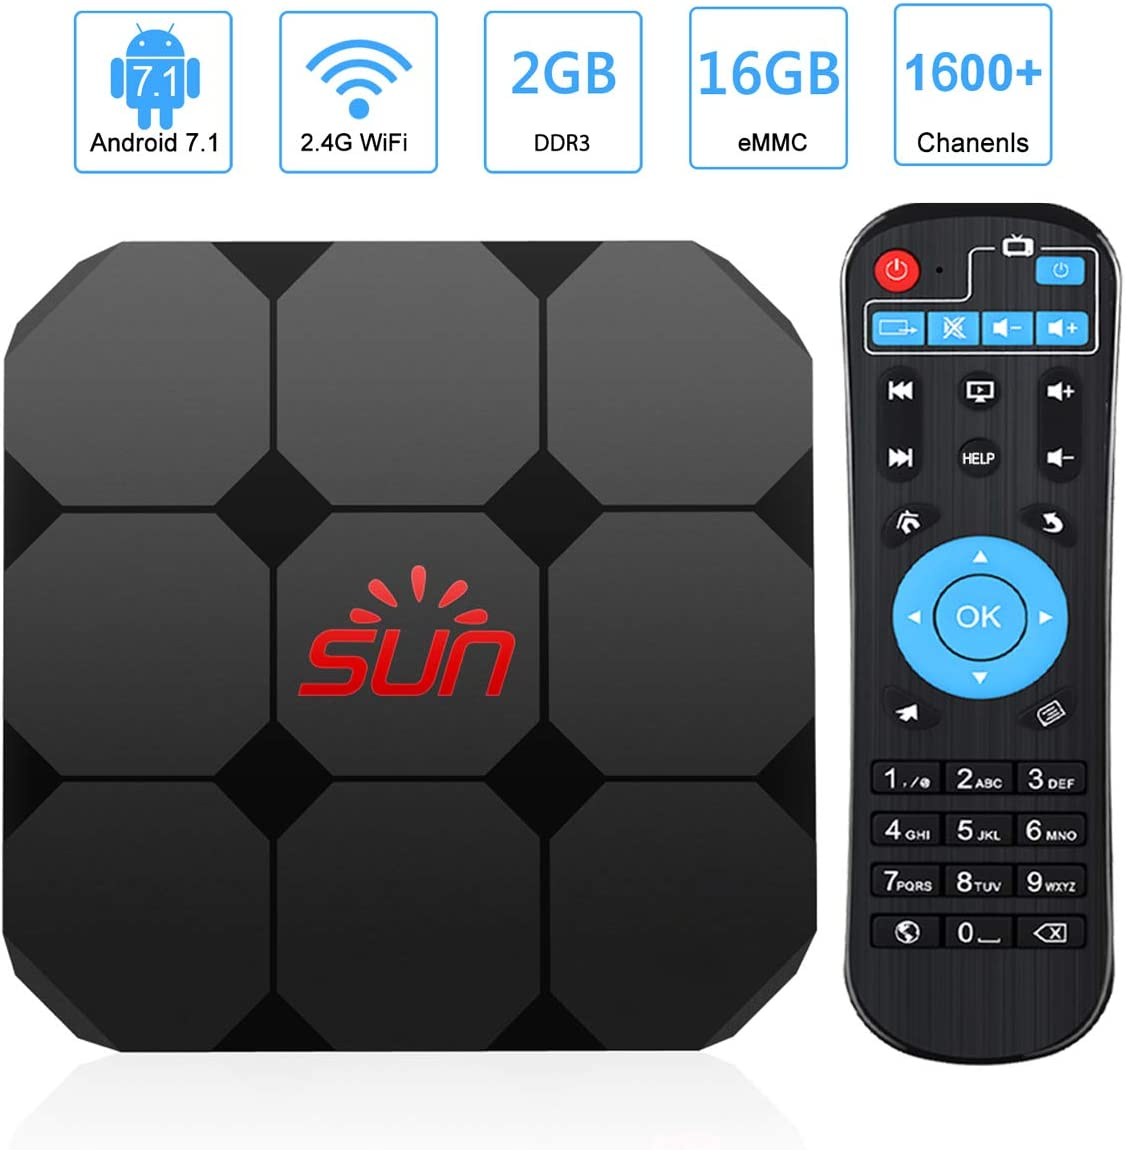 Android TV Receiver Sun IPTV Box 2020 Newest Upgraded Version America 1600+ 4K HD International Live Channels from India Brasil Asia Including Sports Movies News Adult Channels Europe